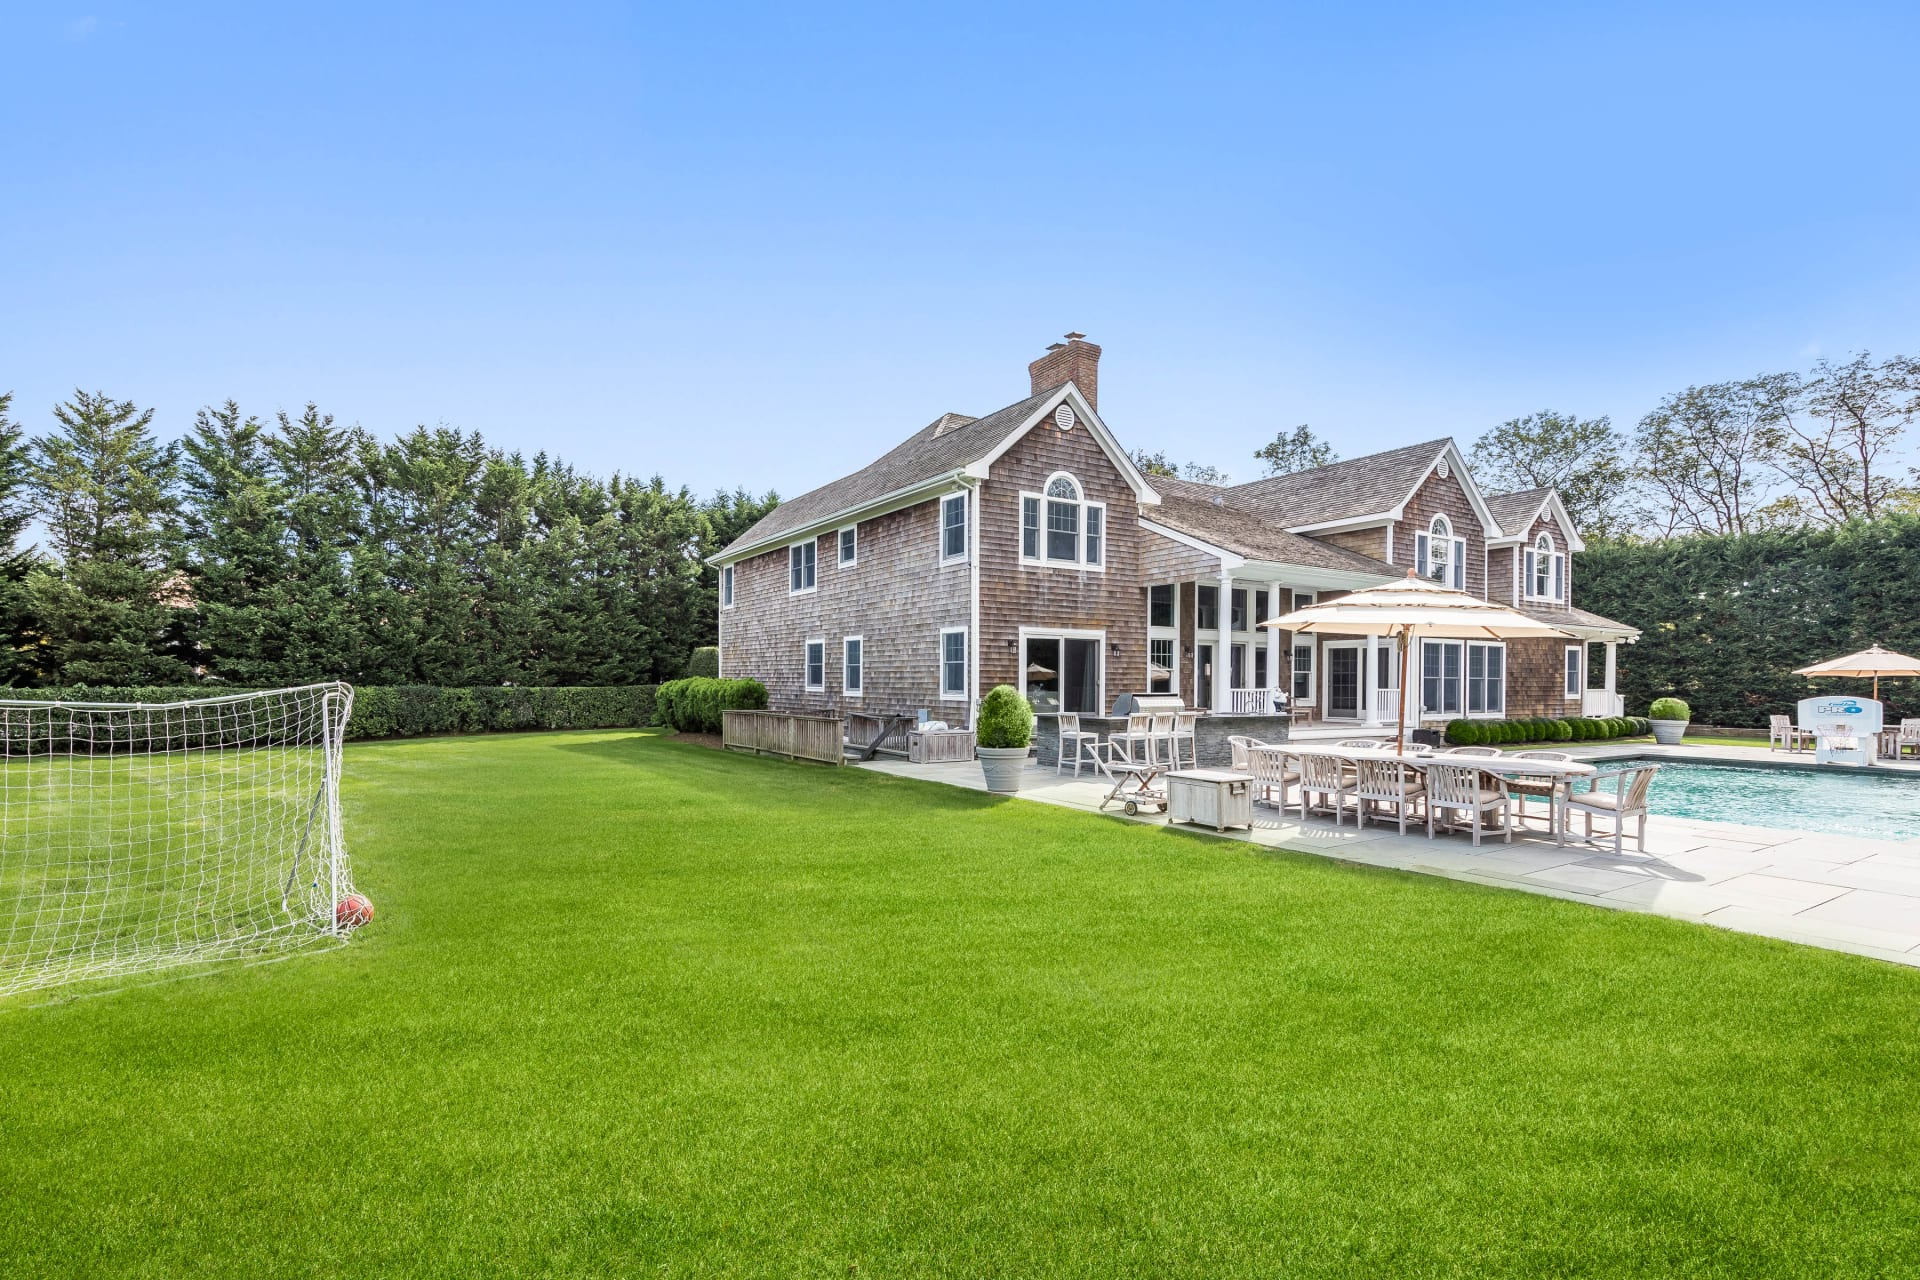 Classic Hamptons Style on a Large, Gated Lot and Secluded Cul de Sac